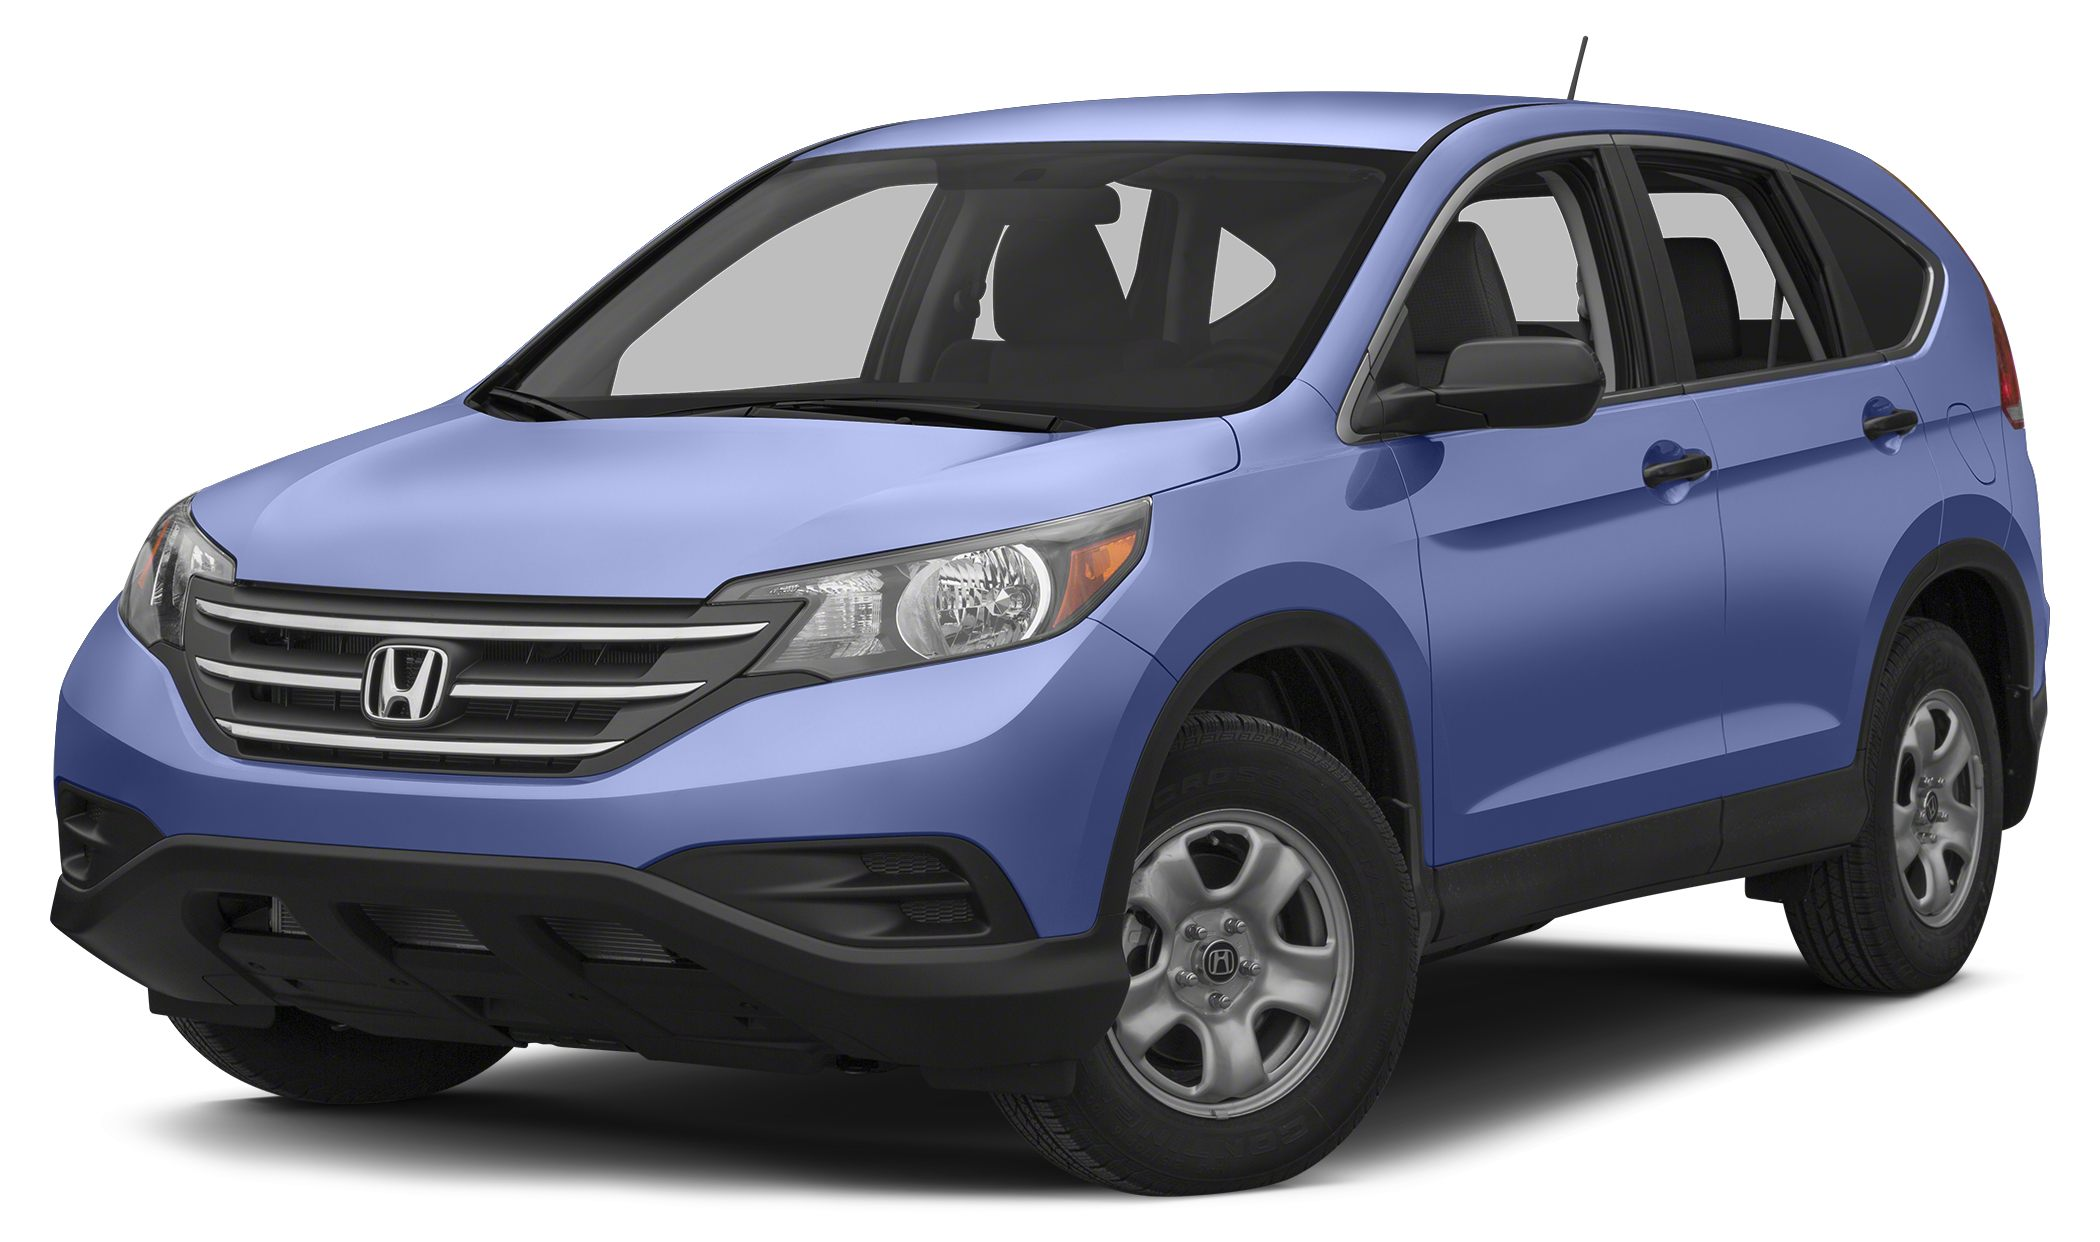 2014 Honda CR-V LX CARFAX 1-Owner Excellent Condition ONLY 8609 Miles LX trim JUST REPRICED F